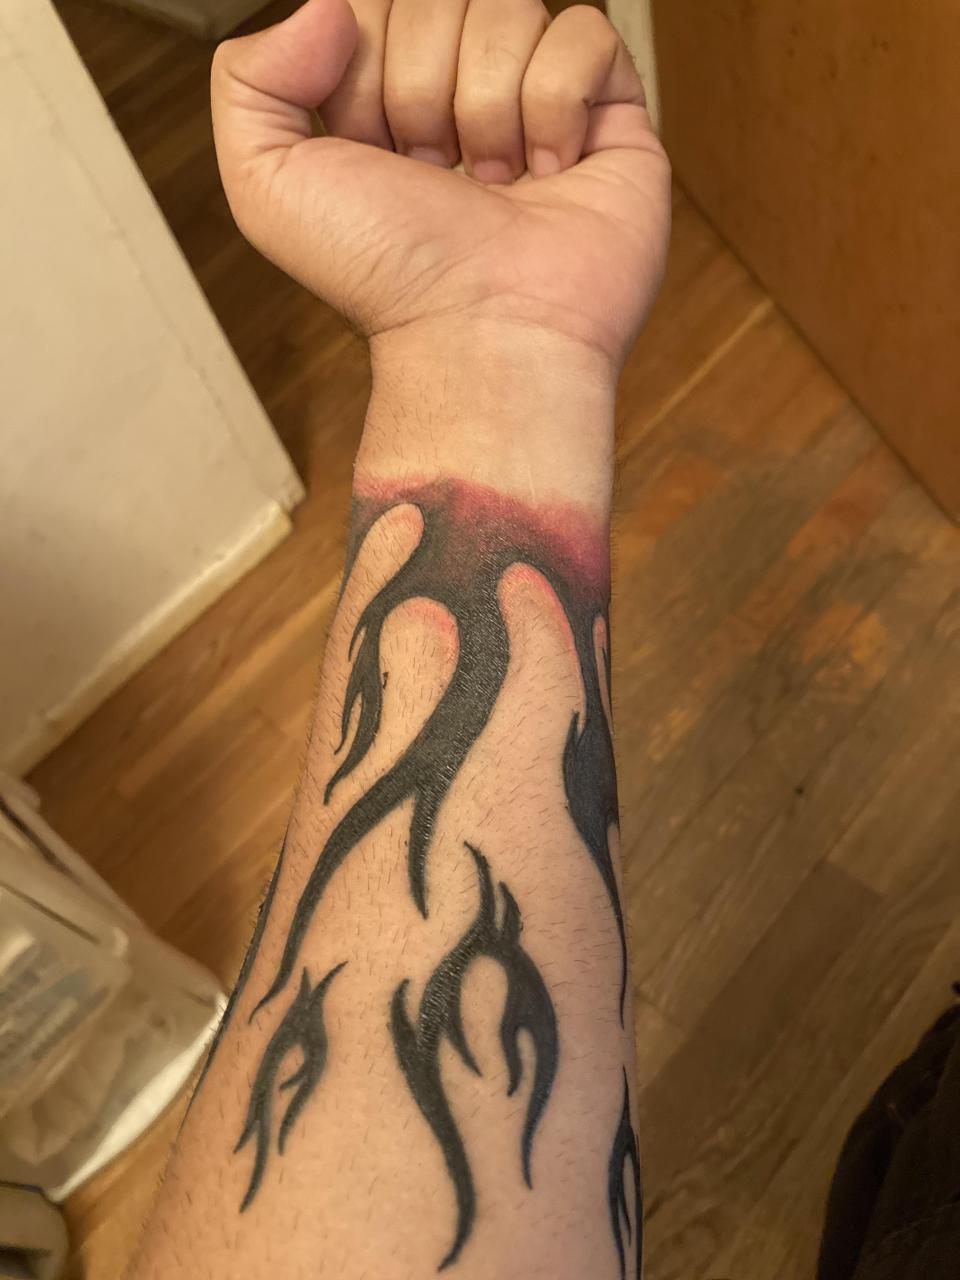 Any ideas on what to put in between the flames while still making the original tat visible? It wraps all around my forearm.